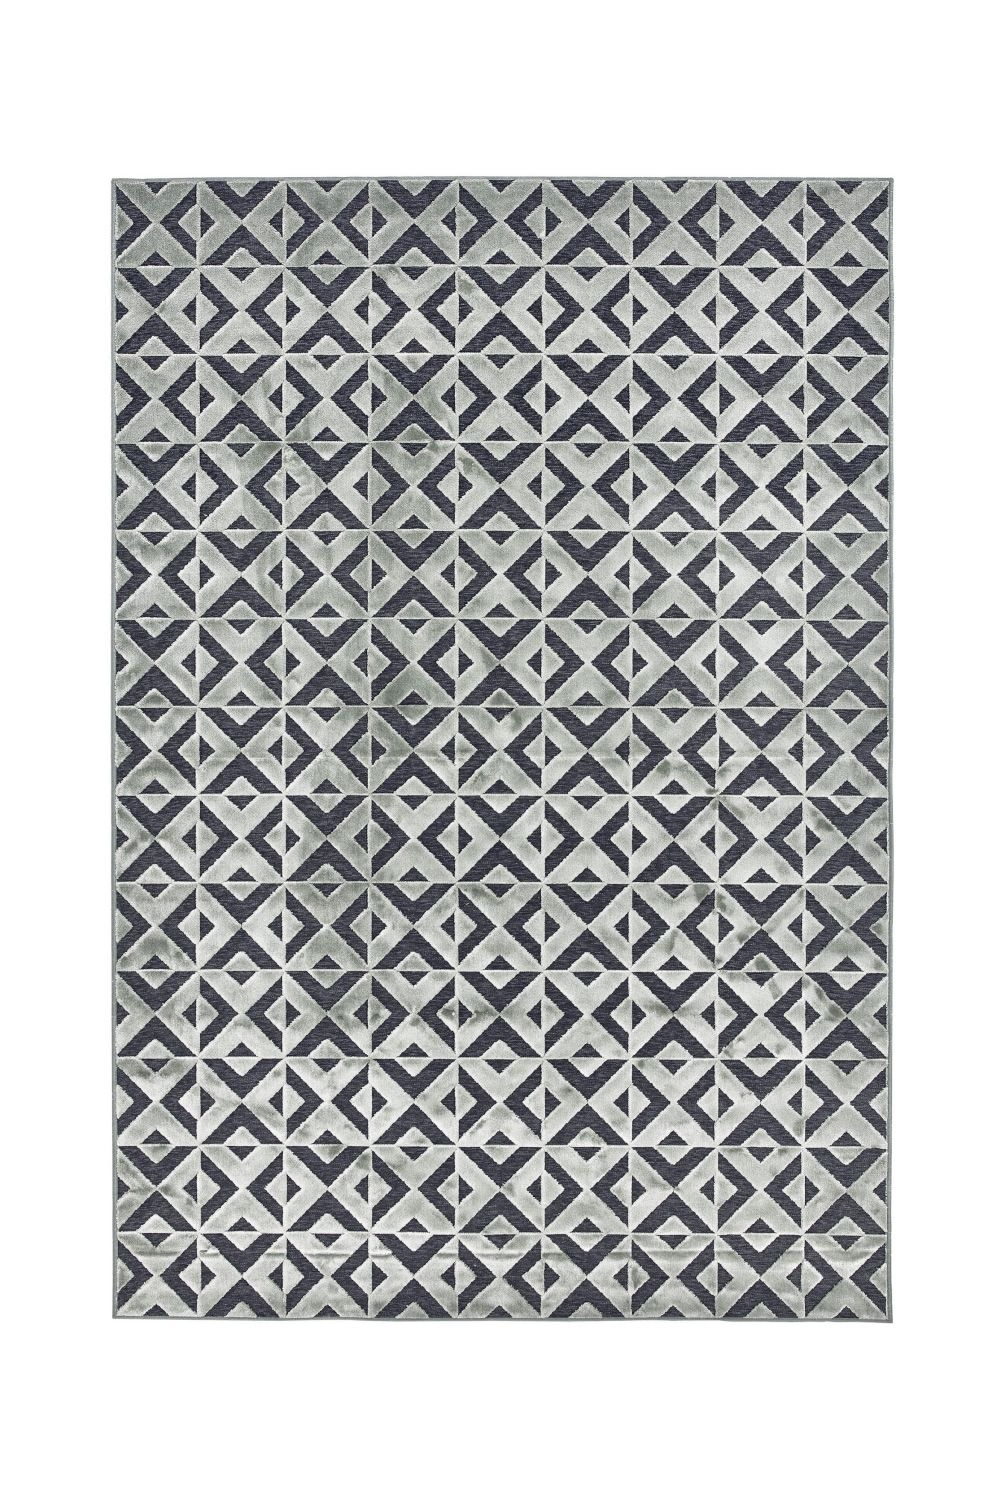 Contemporary rug, light grey version